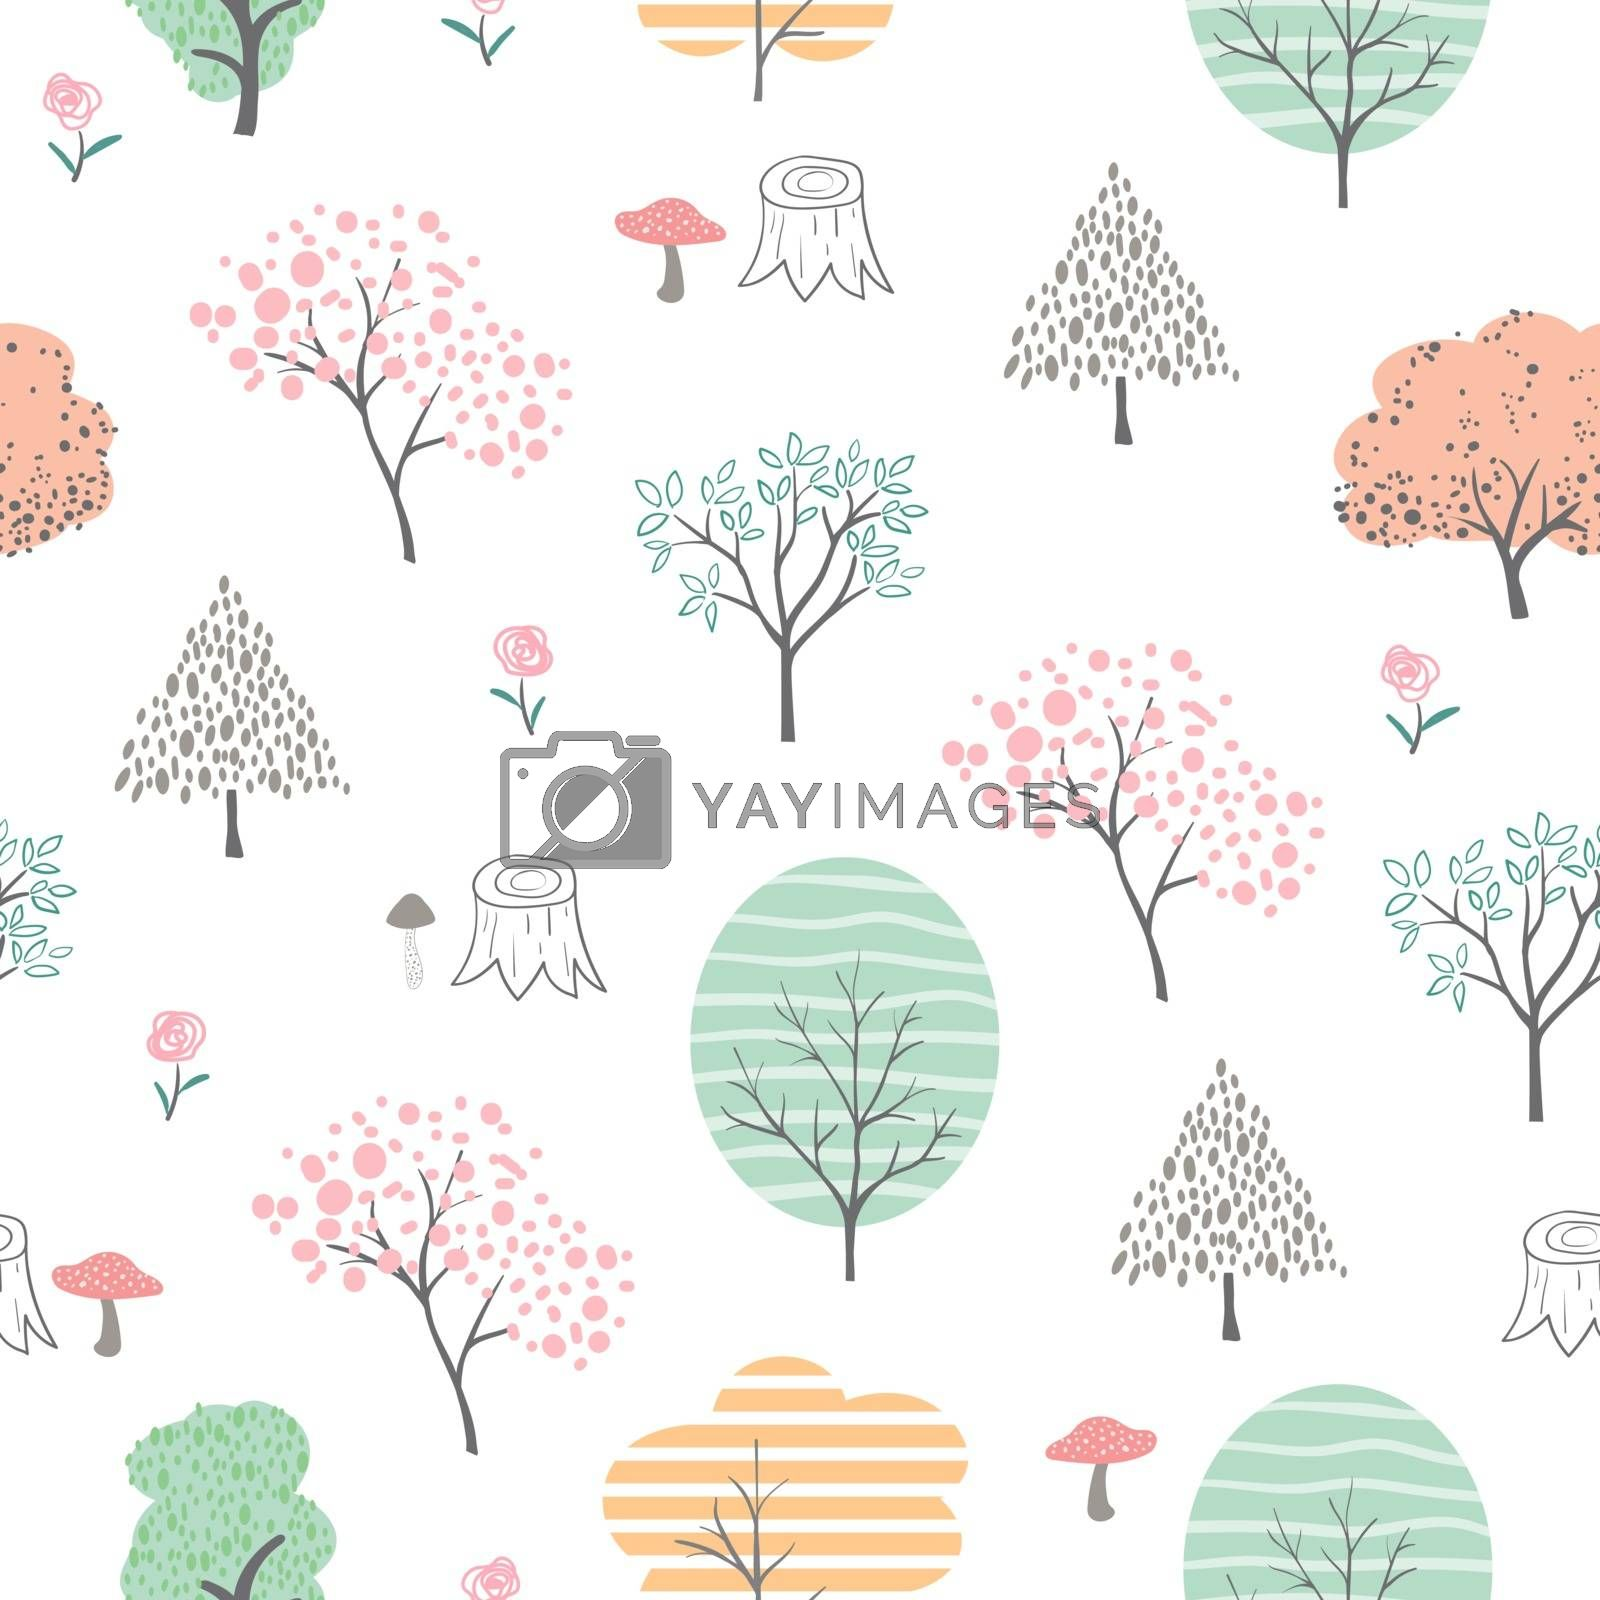 Cute colorful forest seamless pattern,hand drawn cartoon isolated on white background by PIMPAKA